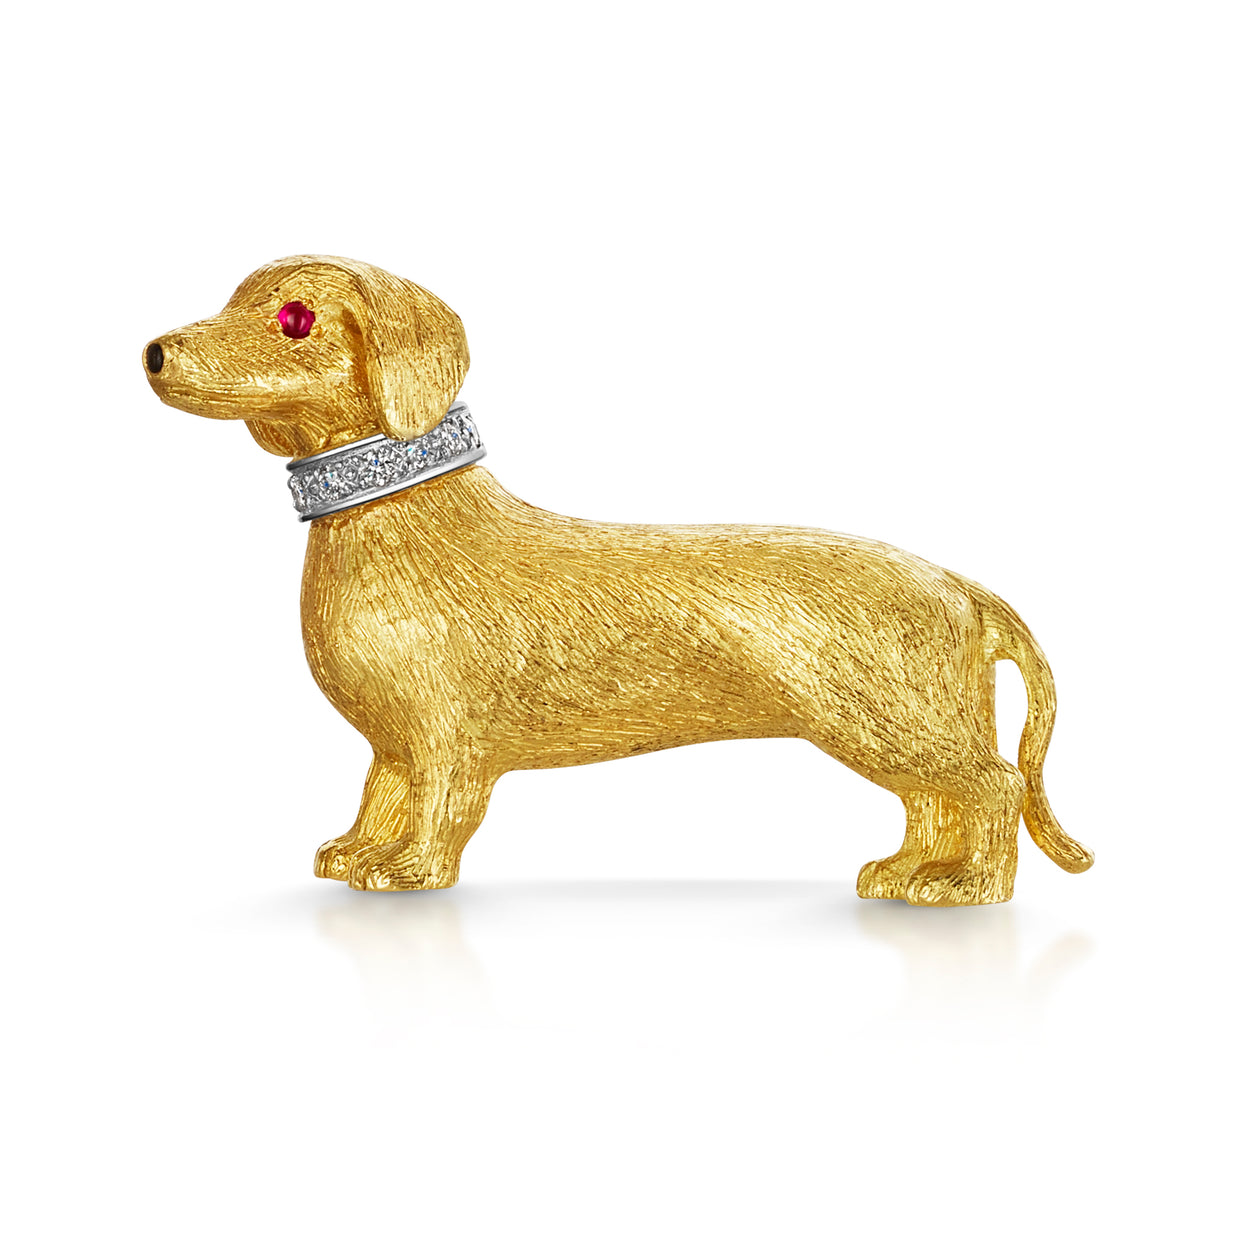 Dachshund Brooch in Yellow Gold - Hamilton & Inches